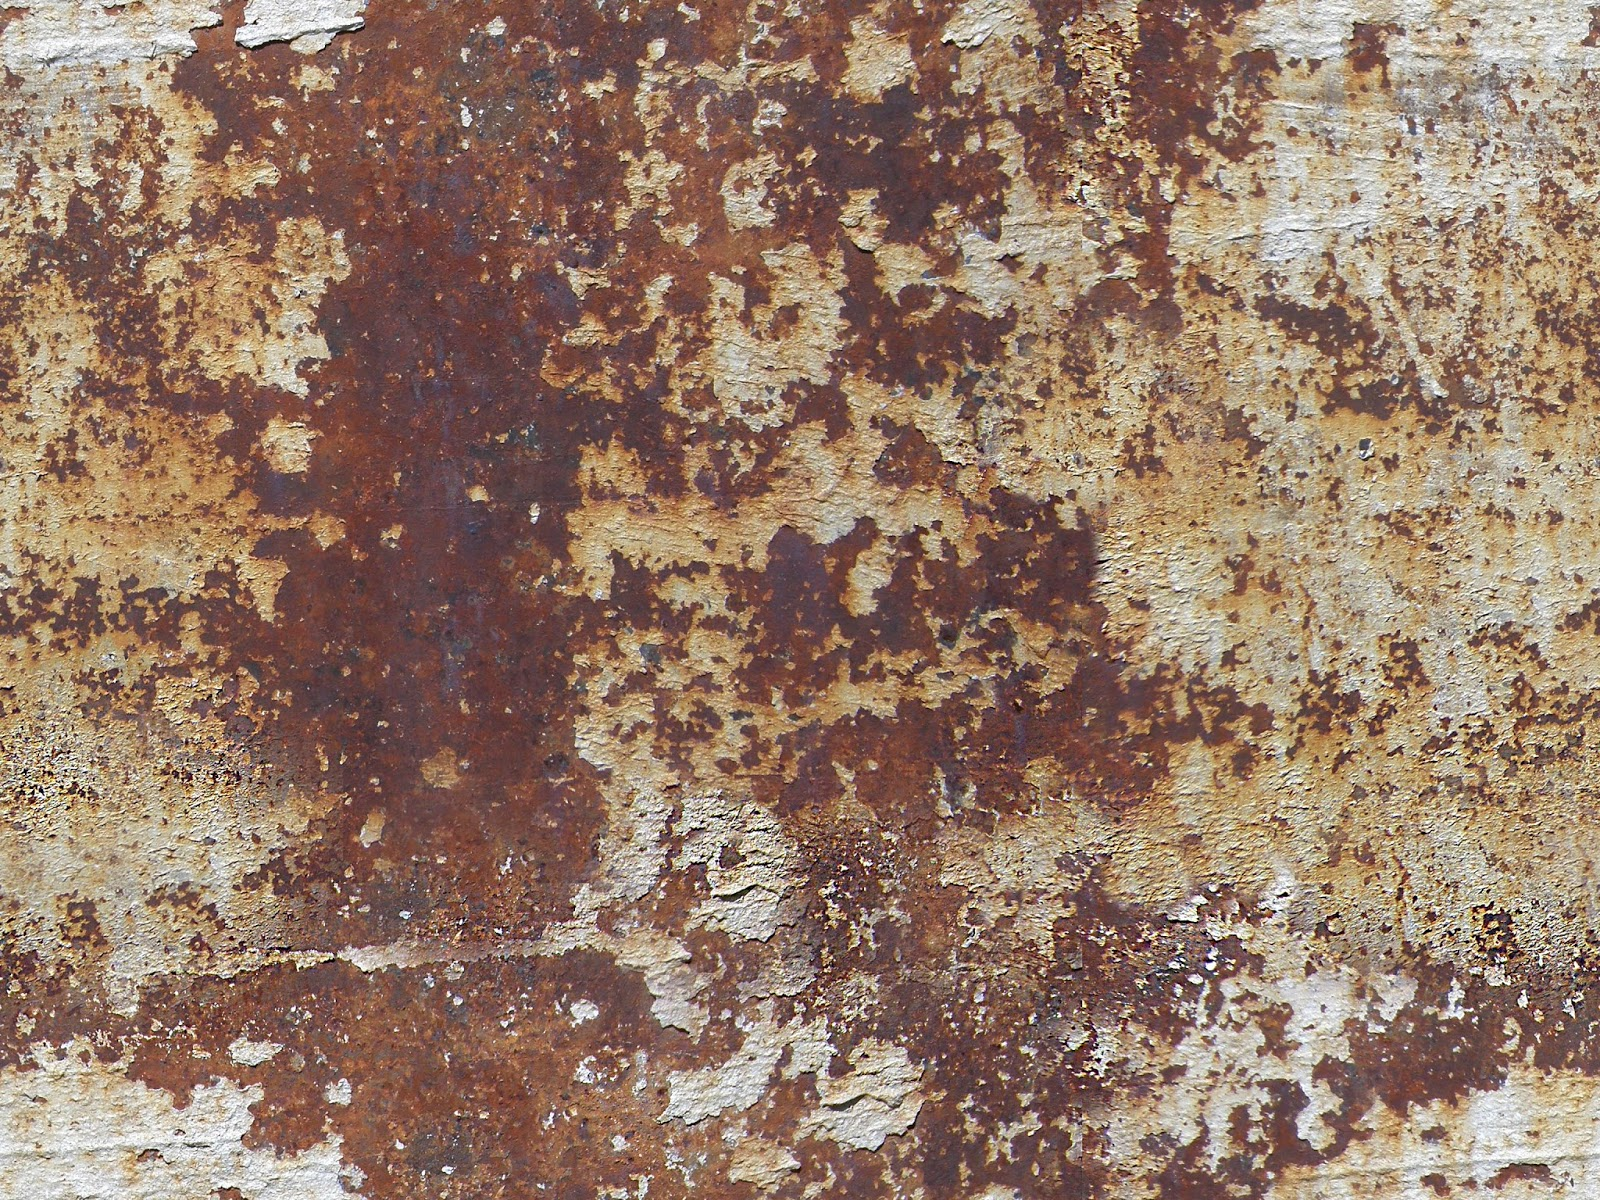 rust metals and texture - photo #6